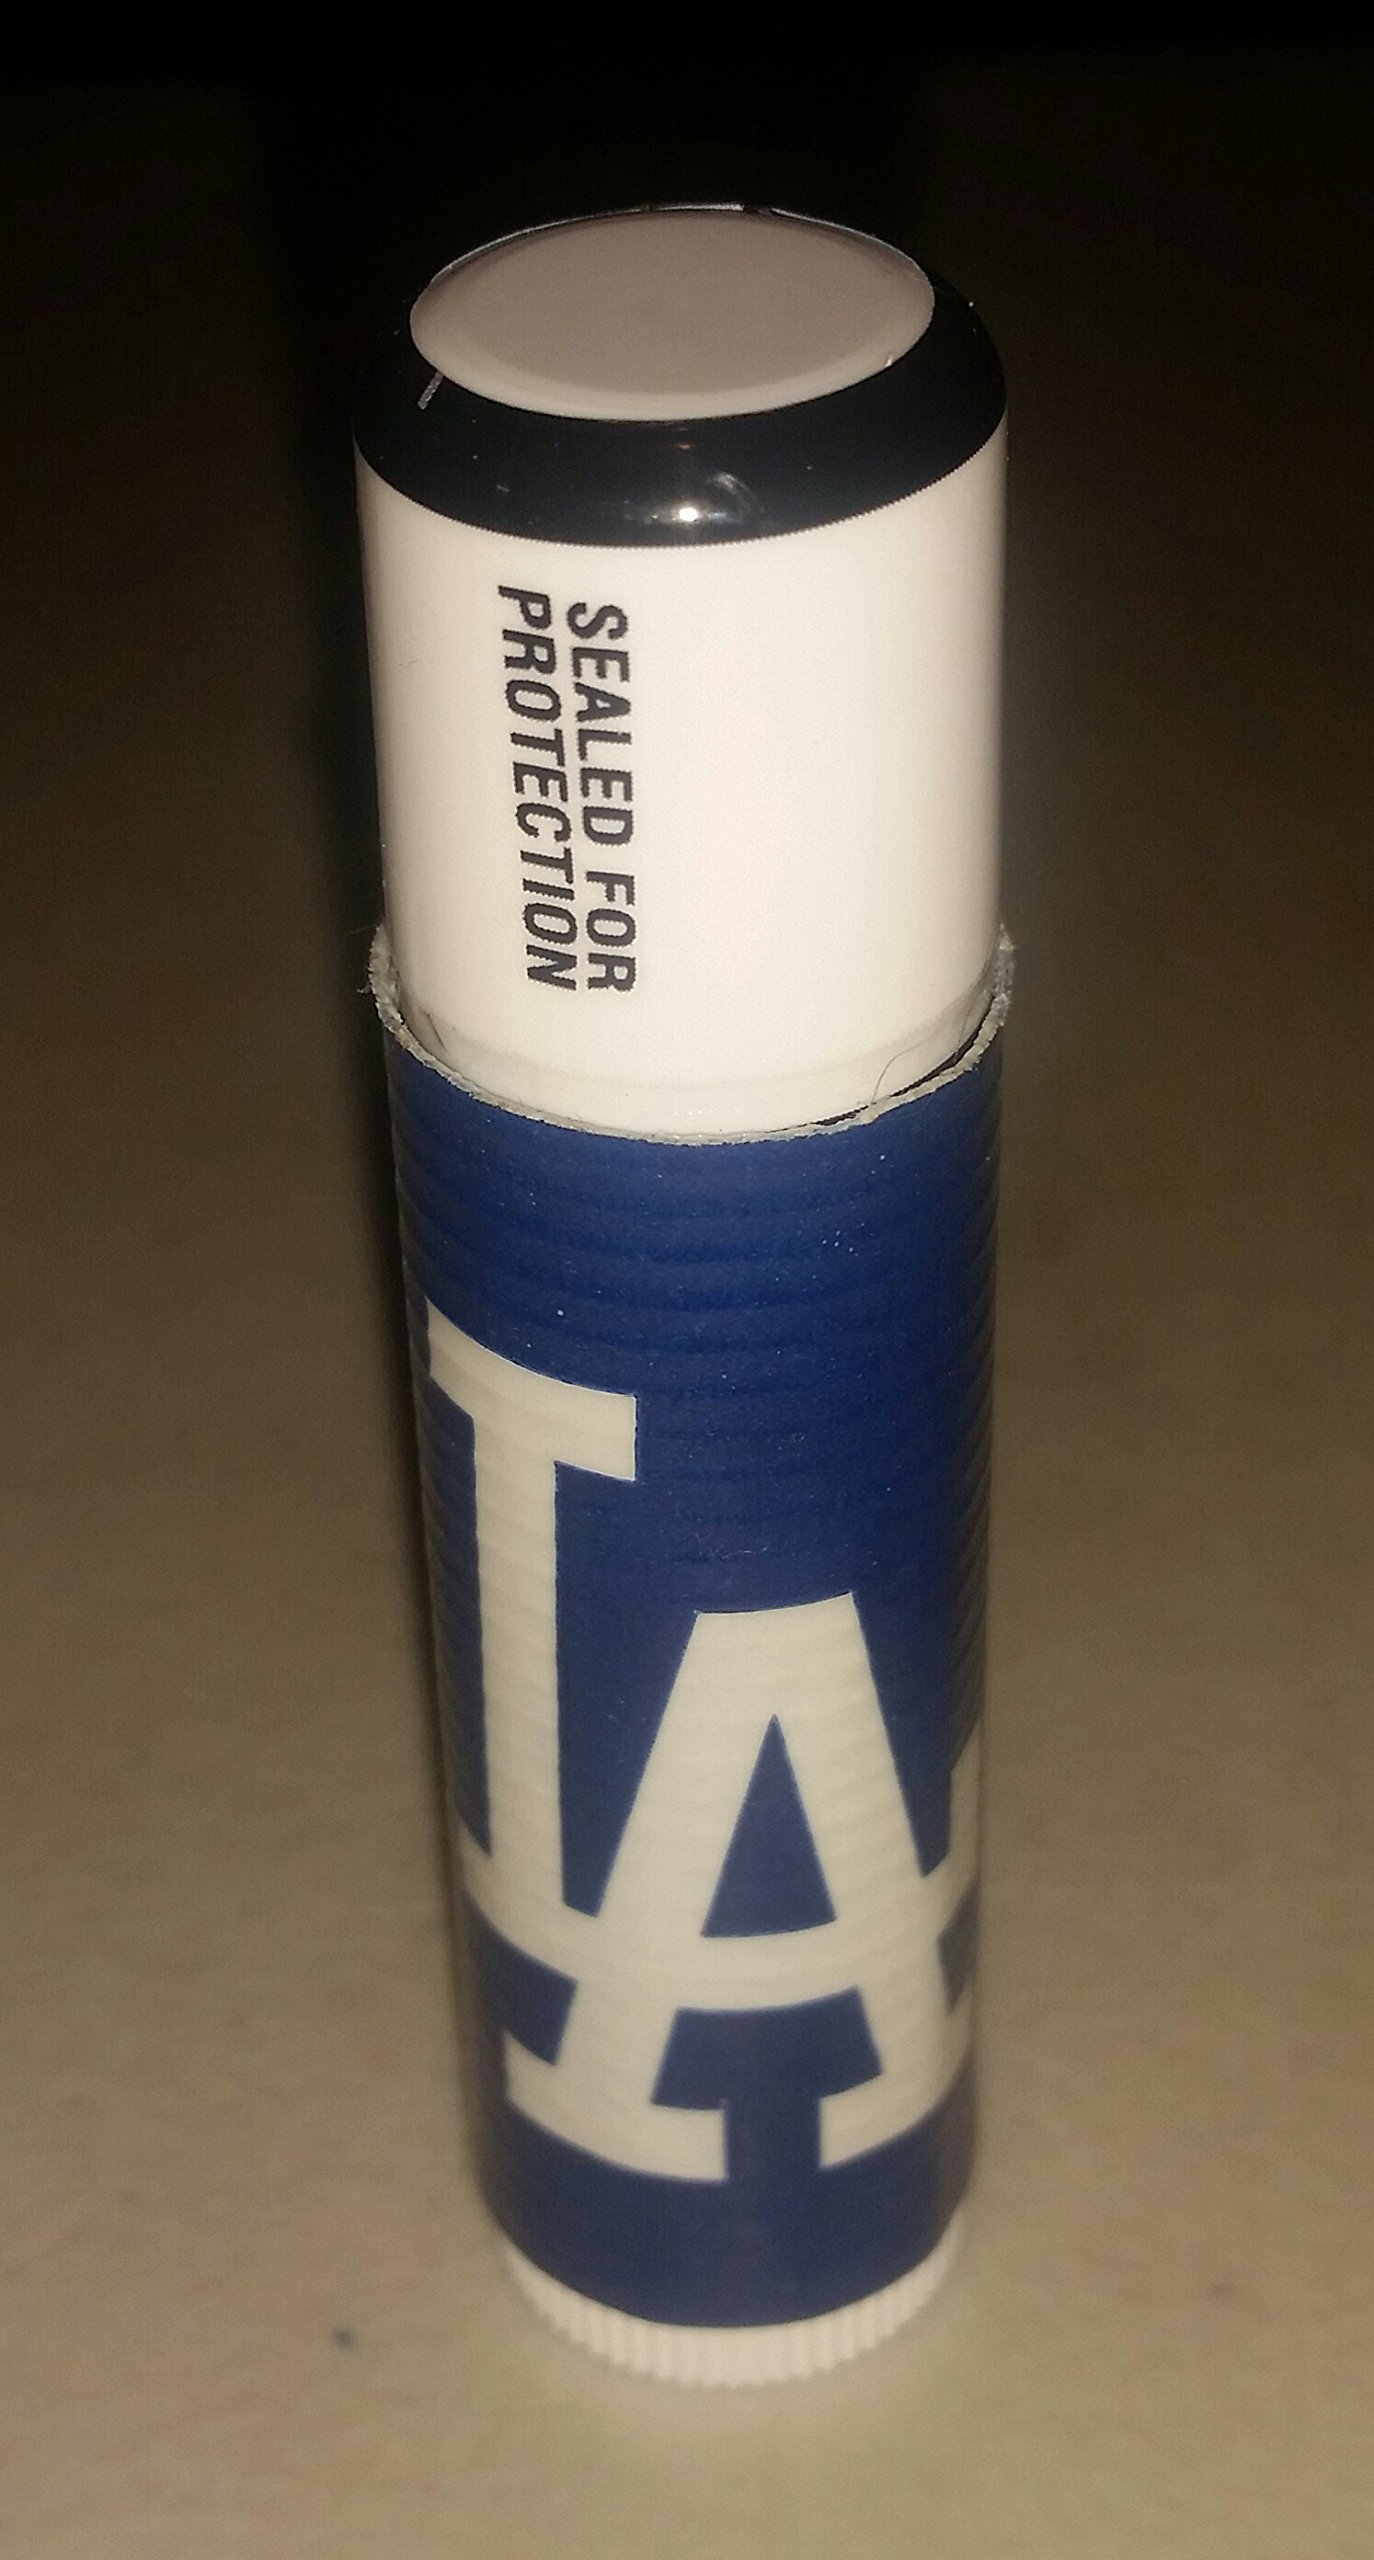 5 LA Dodgers Los Angeles MLB Chap Stick Lip Balm five pack pieces BULK by In a Sticky Situation